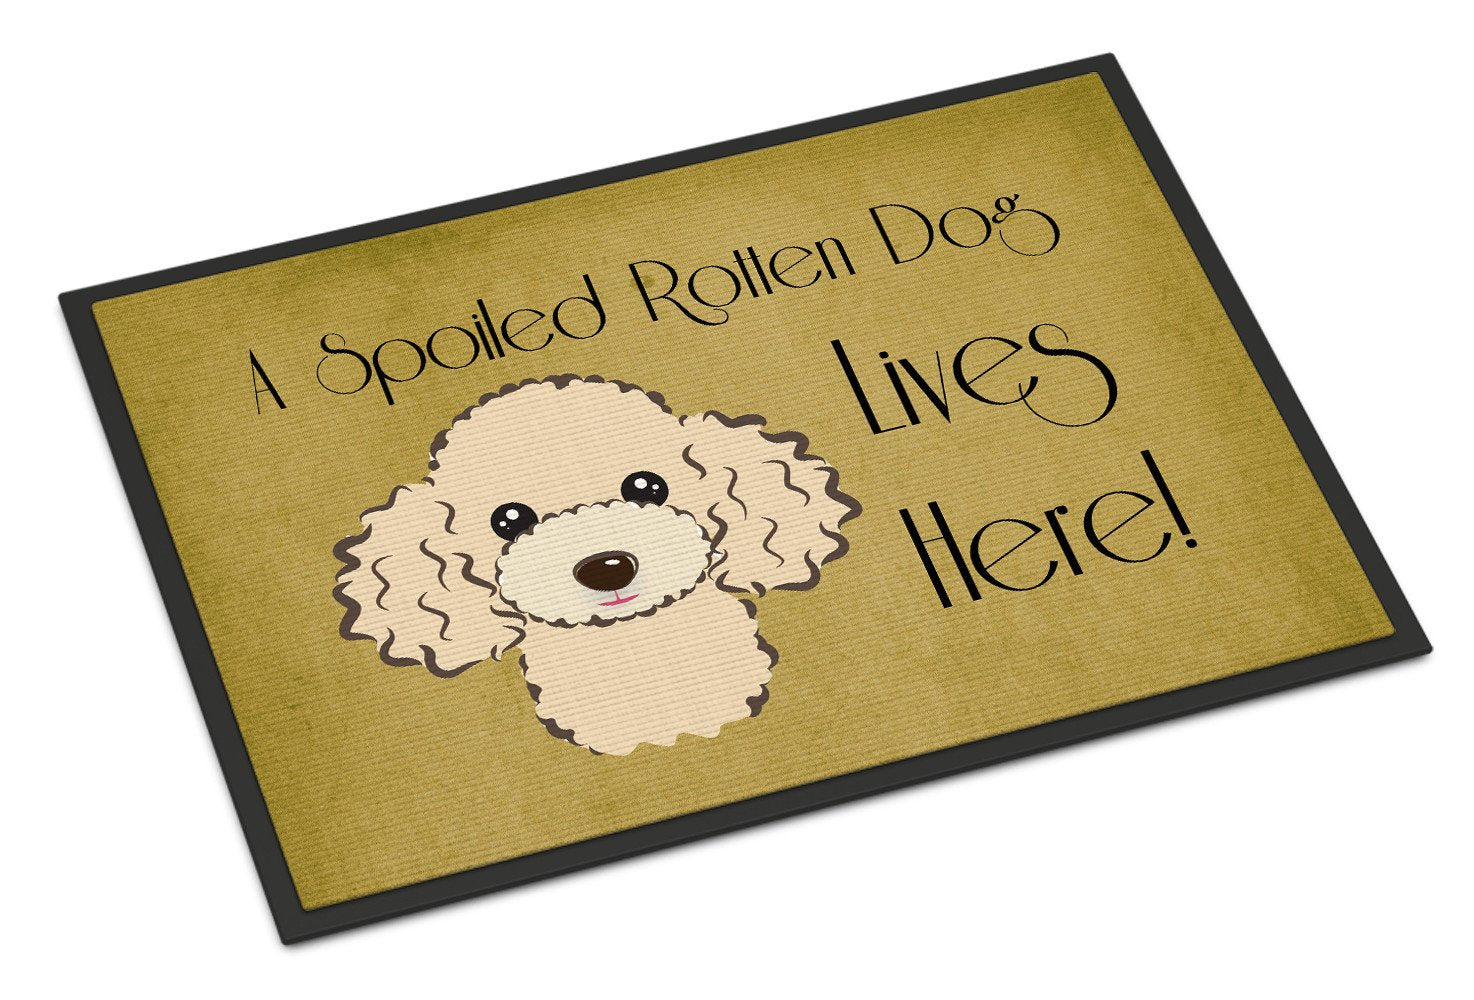 Buff Poodle Spoiled Dog Lives Here Indoor or Outdoor Mat 18x27 BB1506MAT - the-store.com